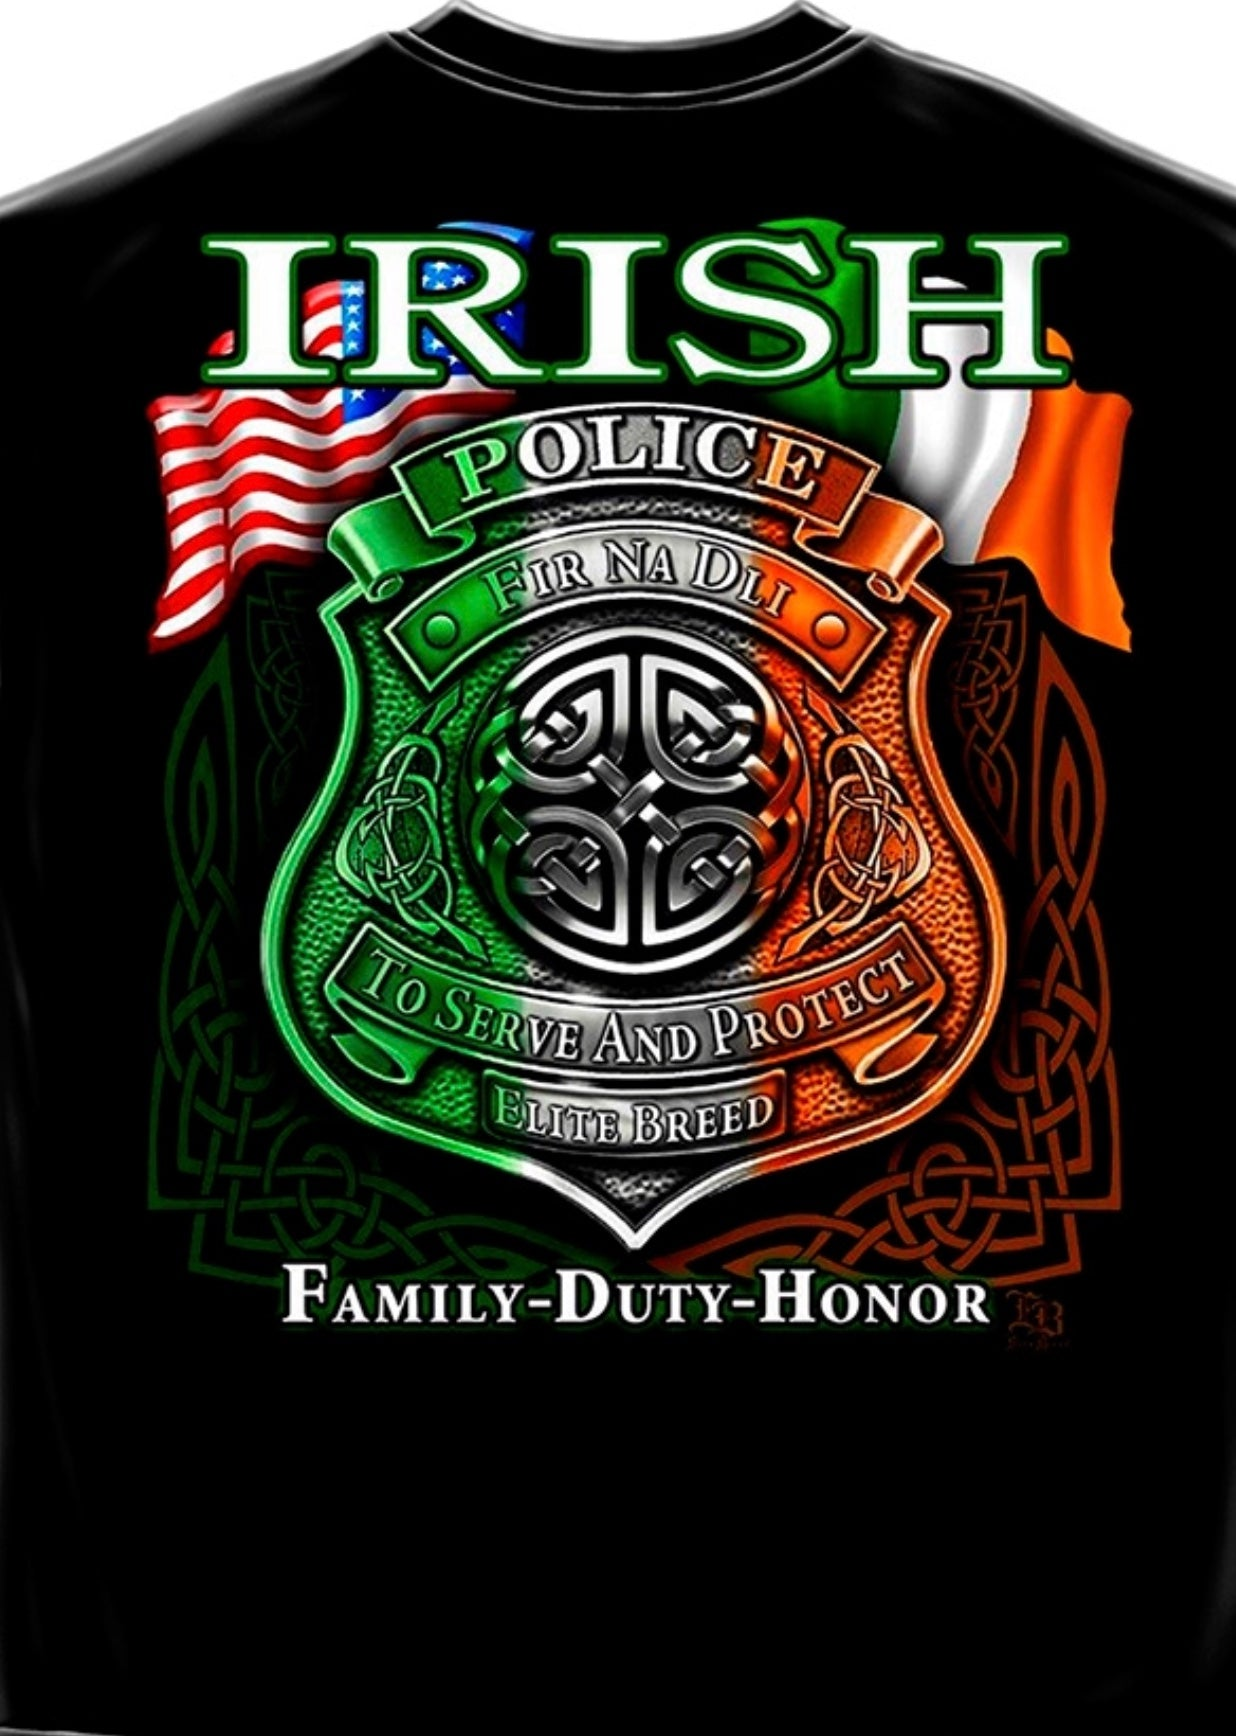 Irish Police T Shirt - The Wall Kids, Inc.